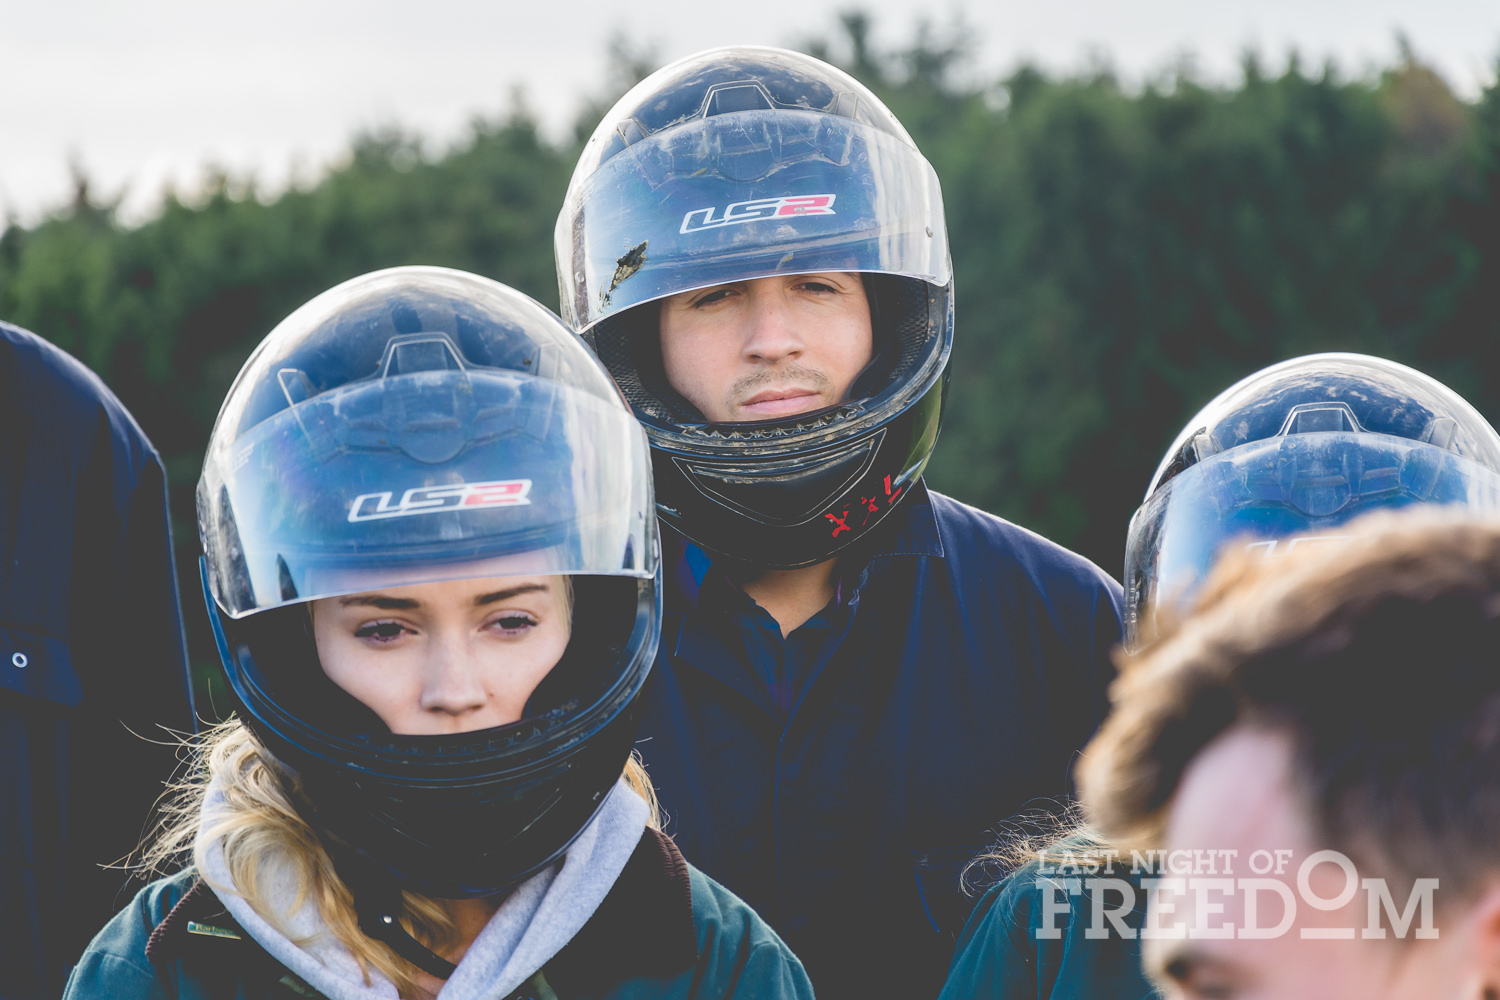 Some people wearing helmets and overalls in a group